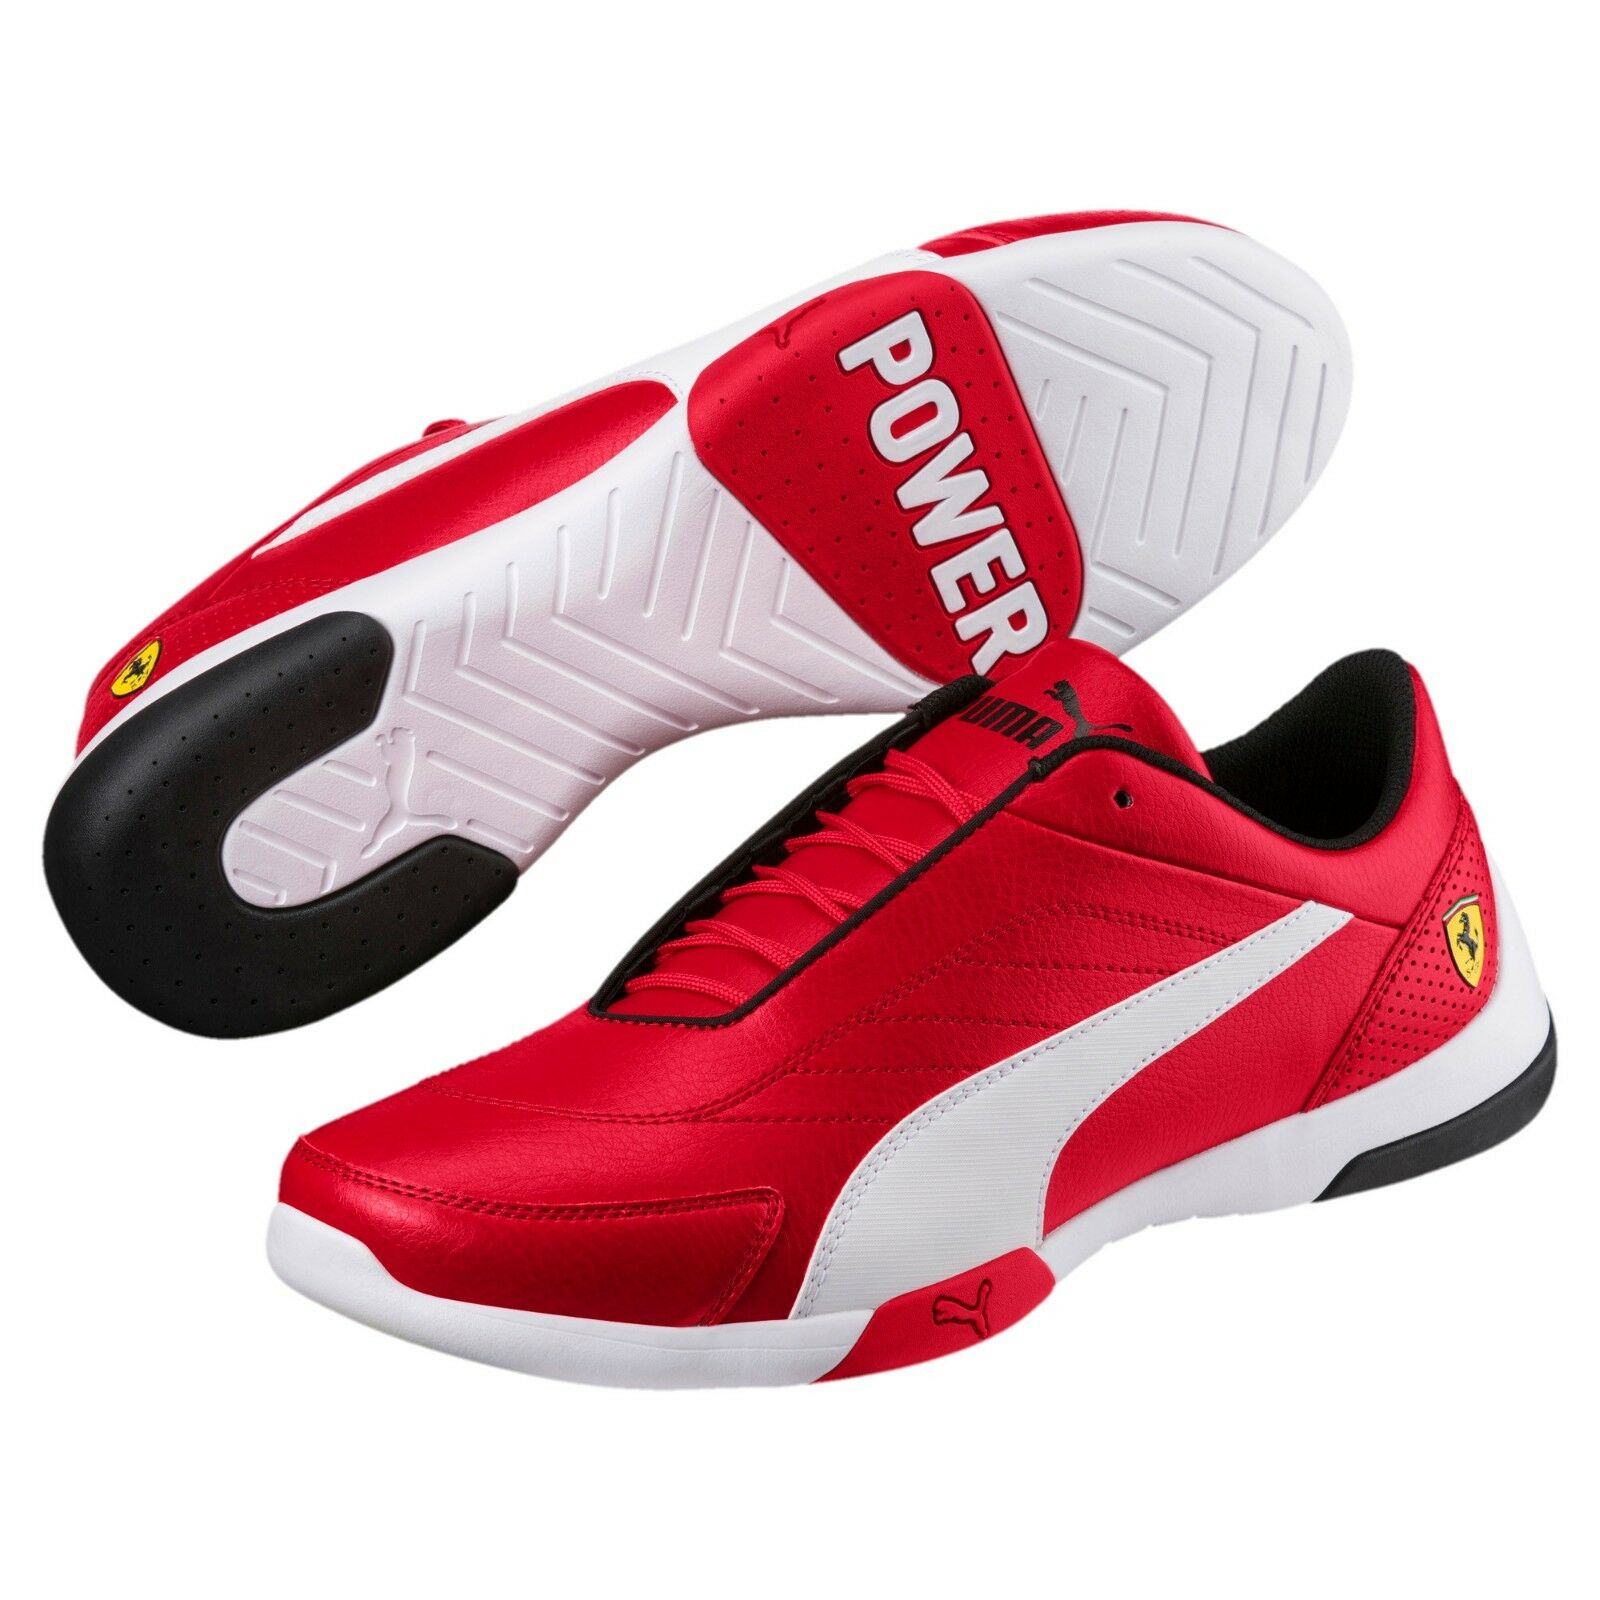 New mens puma ferrari kart cat III sneakers shoes red corsa red 306219-01